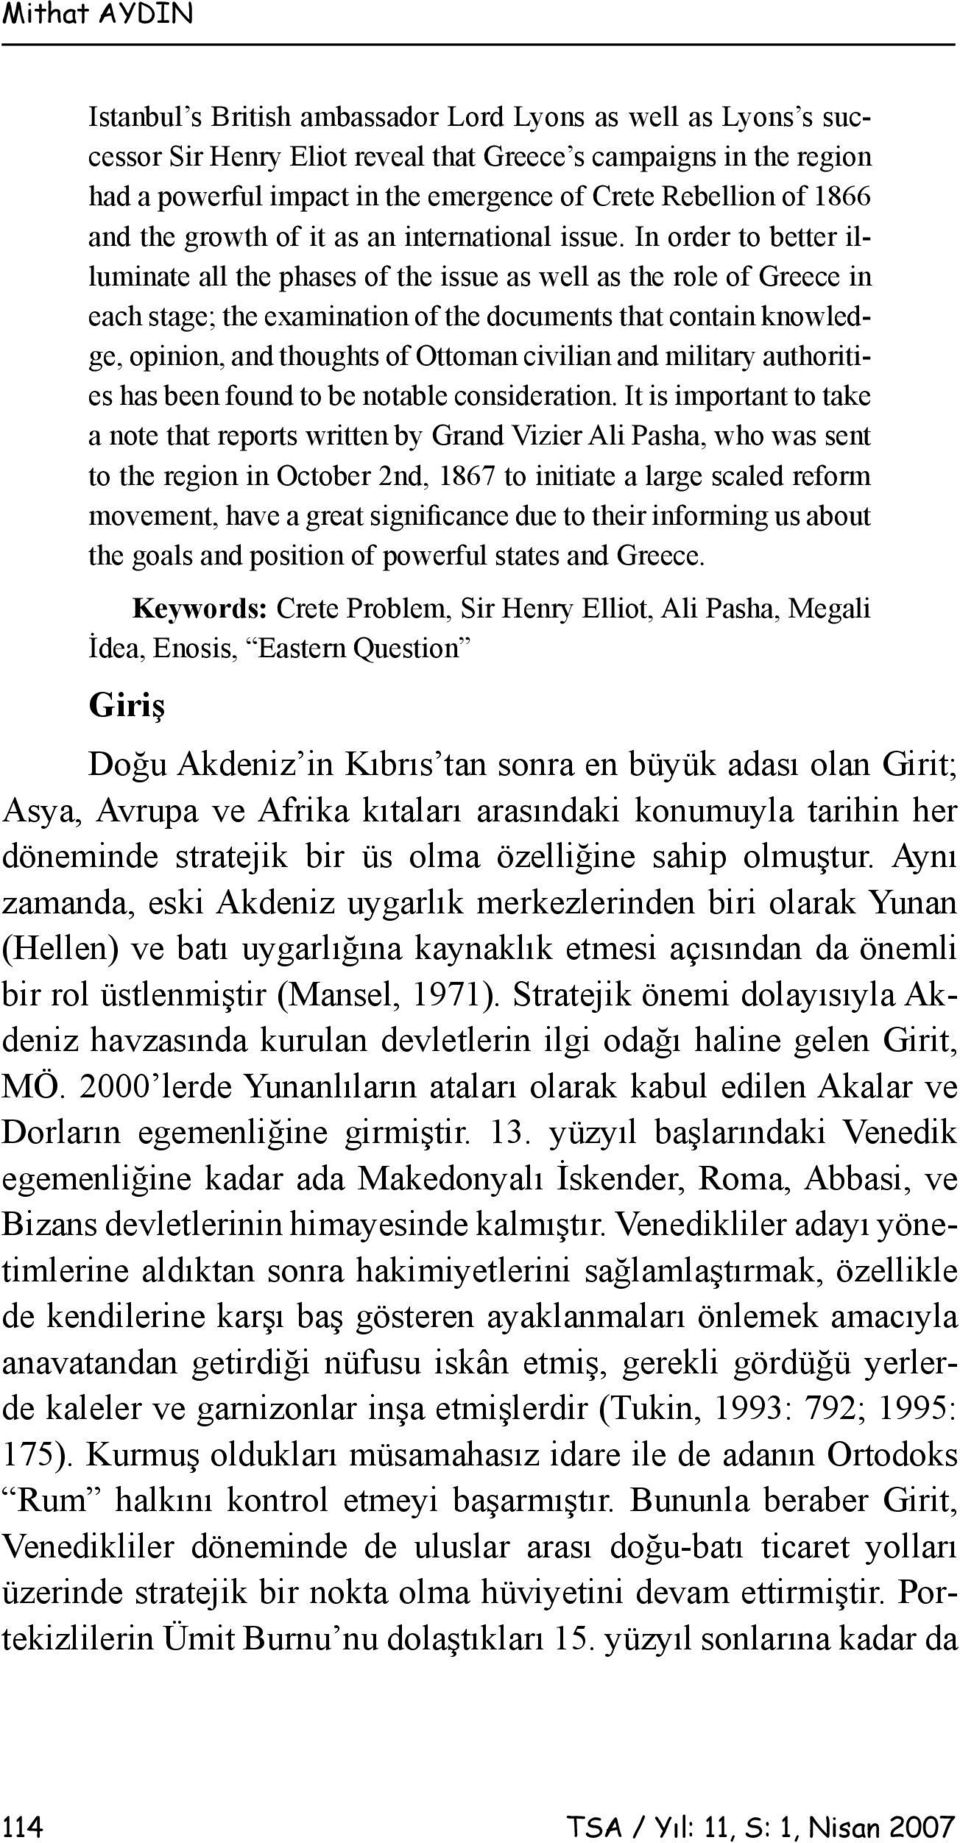 In order to better illuminate all the phases of the issue as well as the role of Greece in each stage; the examination of the documents that contain knowledge, opinion, and thoughts of Ottoman